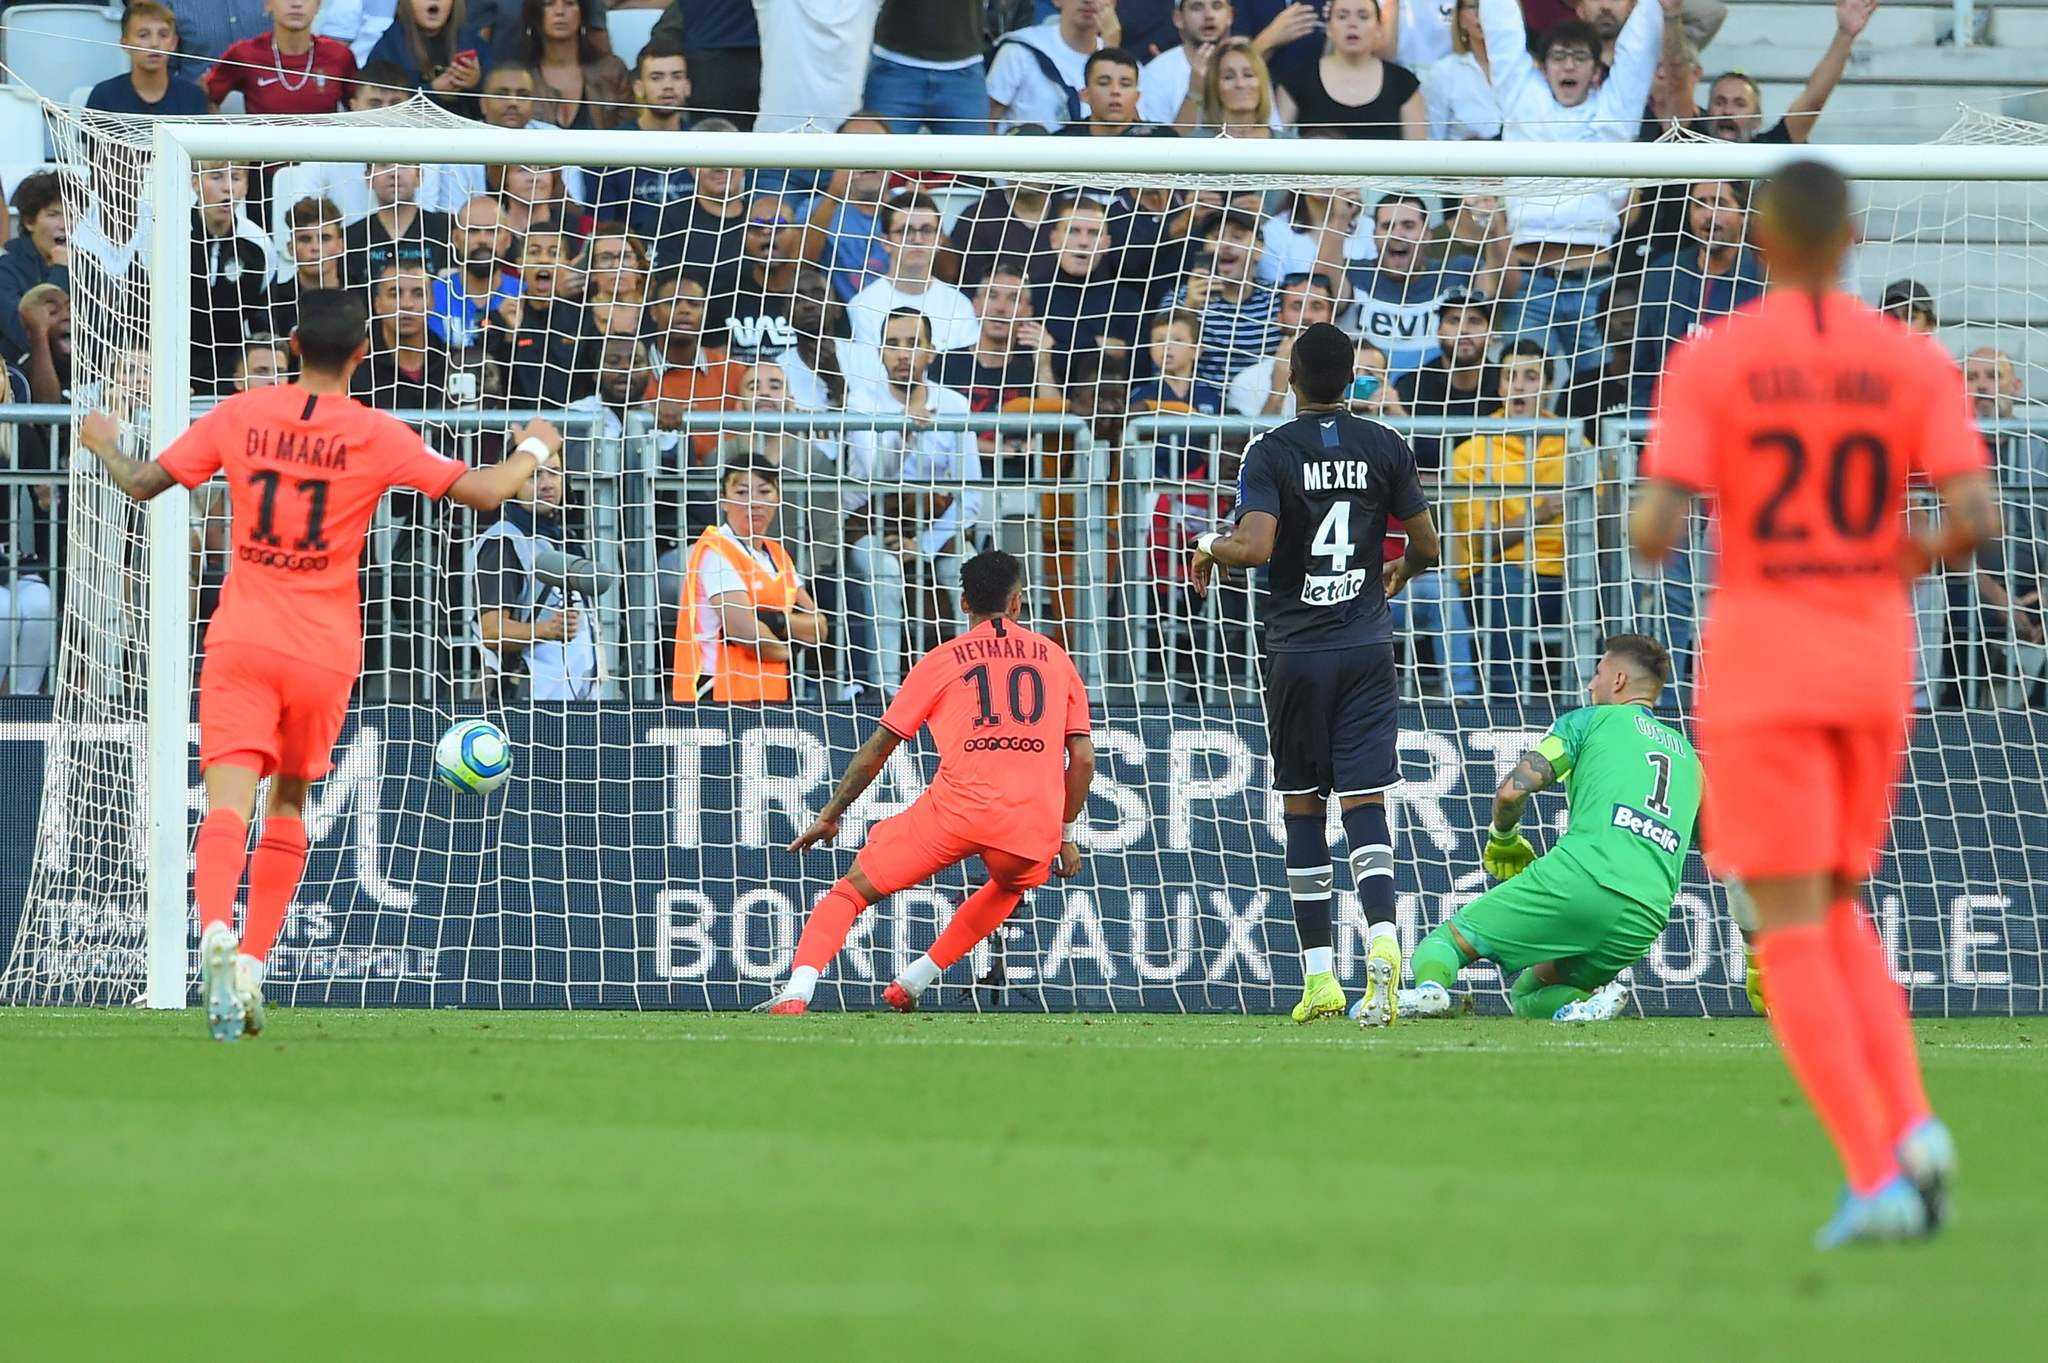 TOPSHOT - Paris Saint-Germains Brazilian forward Neymar (C) celebrates after scoring a goal during the French L1 football match between Girondins de Bordeaux and Paris Saint-Germain (<HIT>PSG</HIT>) on September 28, 2019 in Bordeaux. (Photo by NICOLAS TUCAT / AFP)